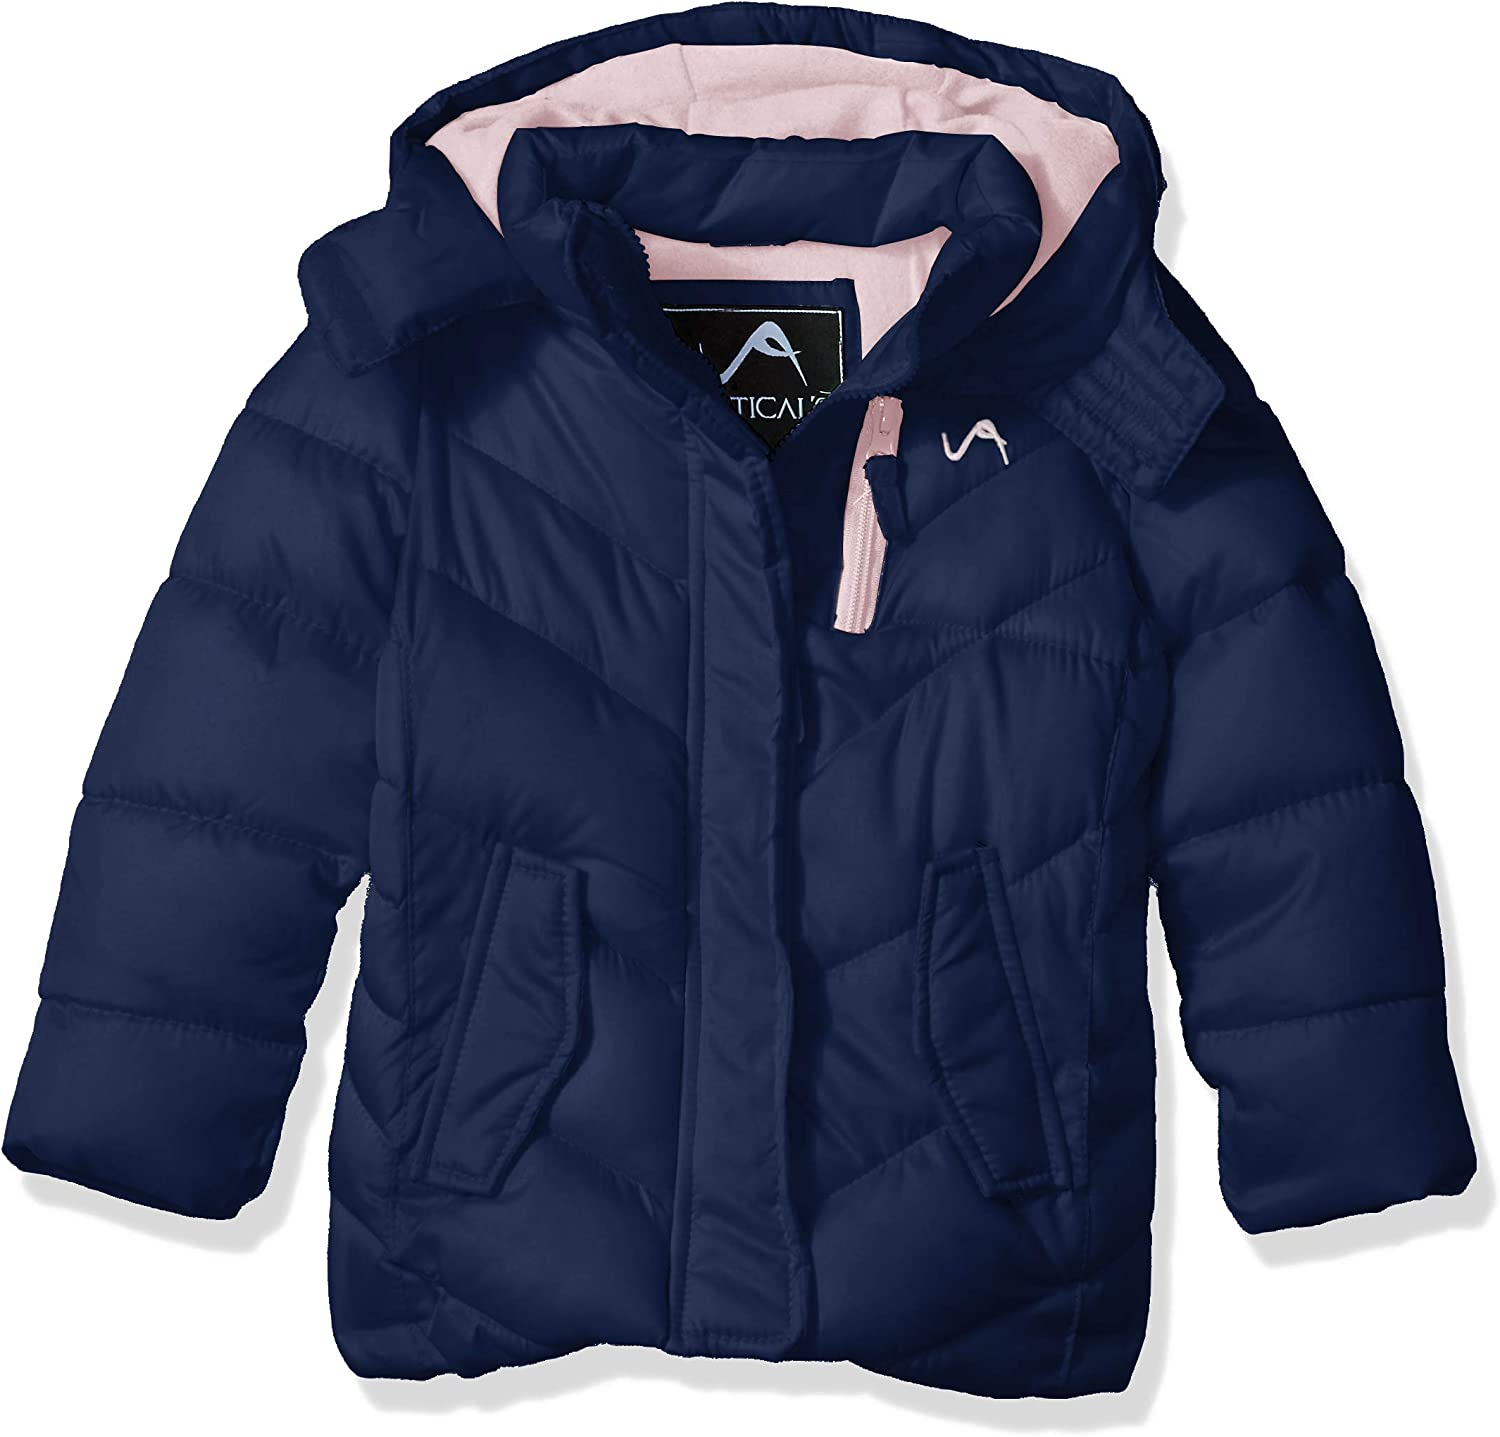 More Styles Available Medium Length Puffer Navy 4 Vertical 9 Girls Little Bubble Jacket